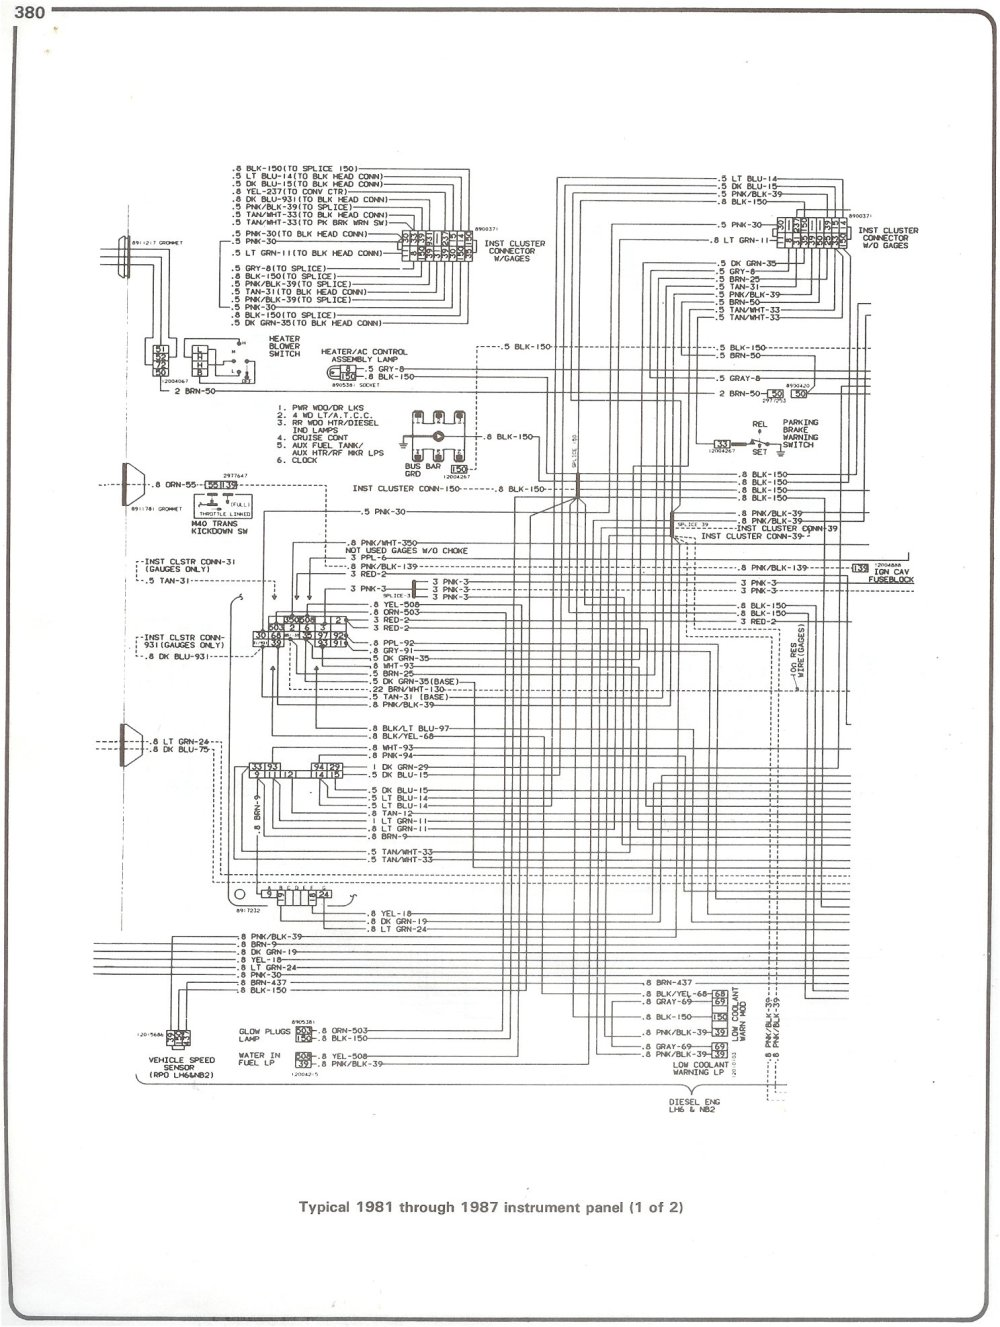 medium resolution of instrument cluster wiring schematic for 2006 silverado wiring diagram 2003 chevrolet silverado wiring diagram 3500 chevy